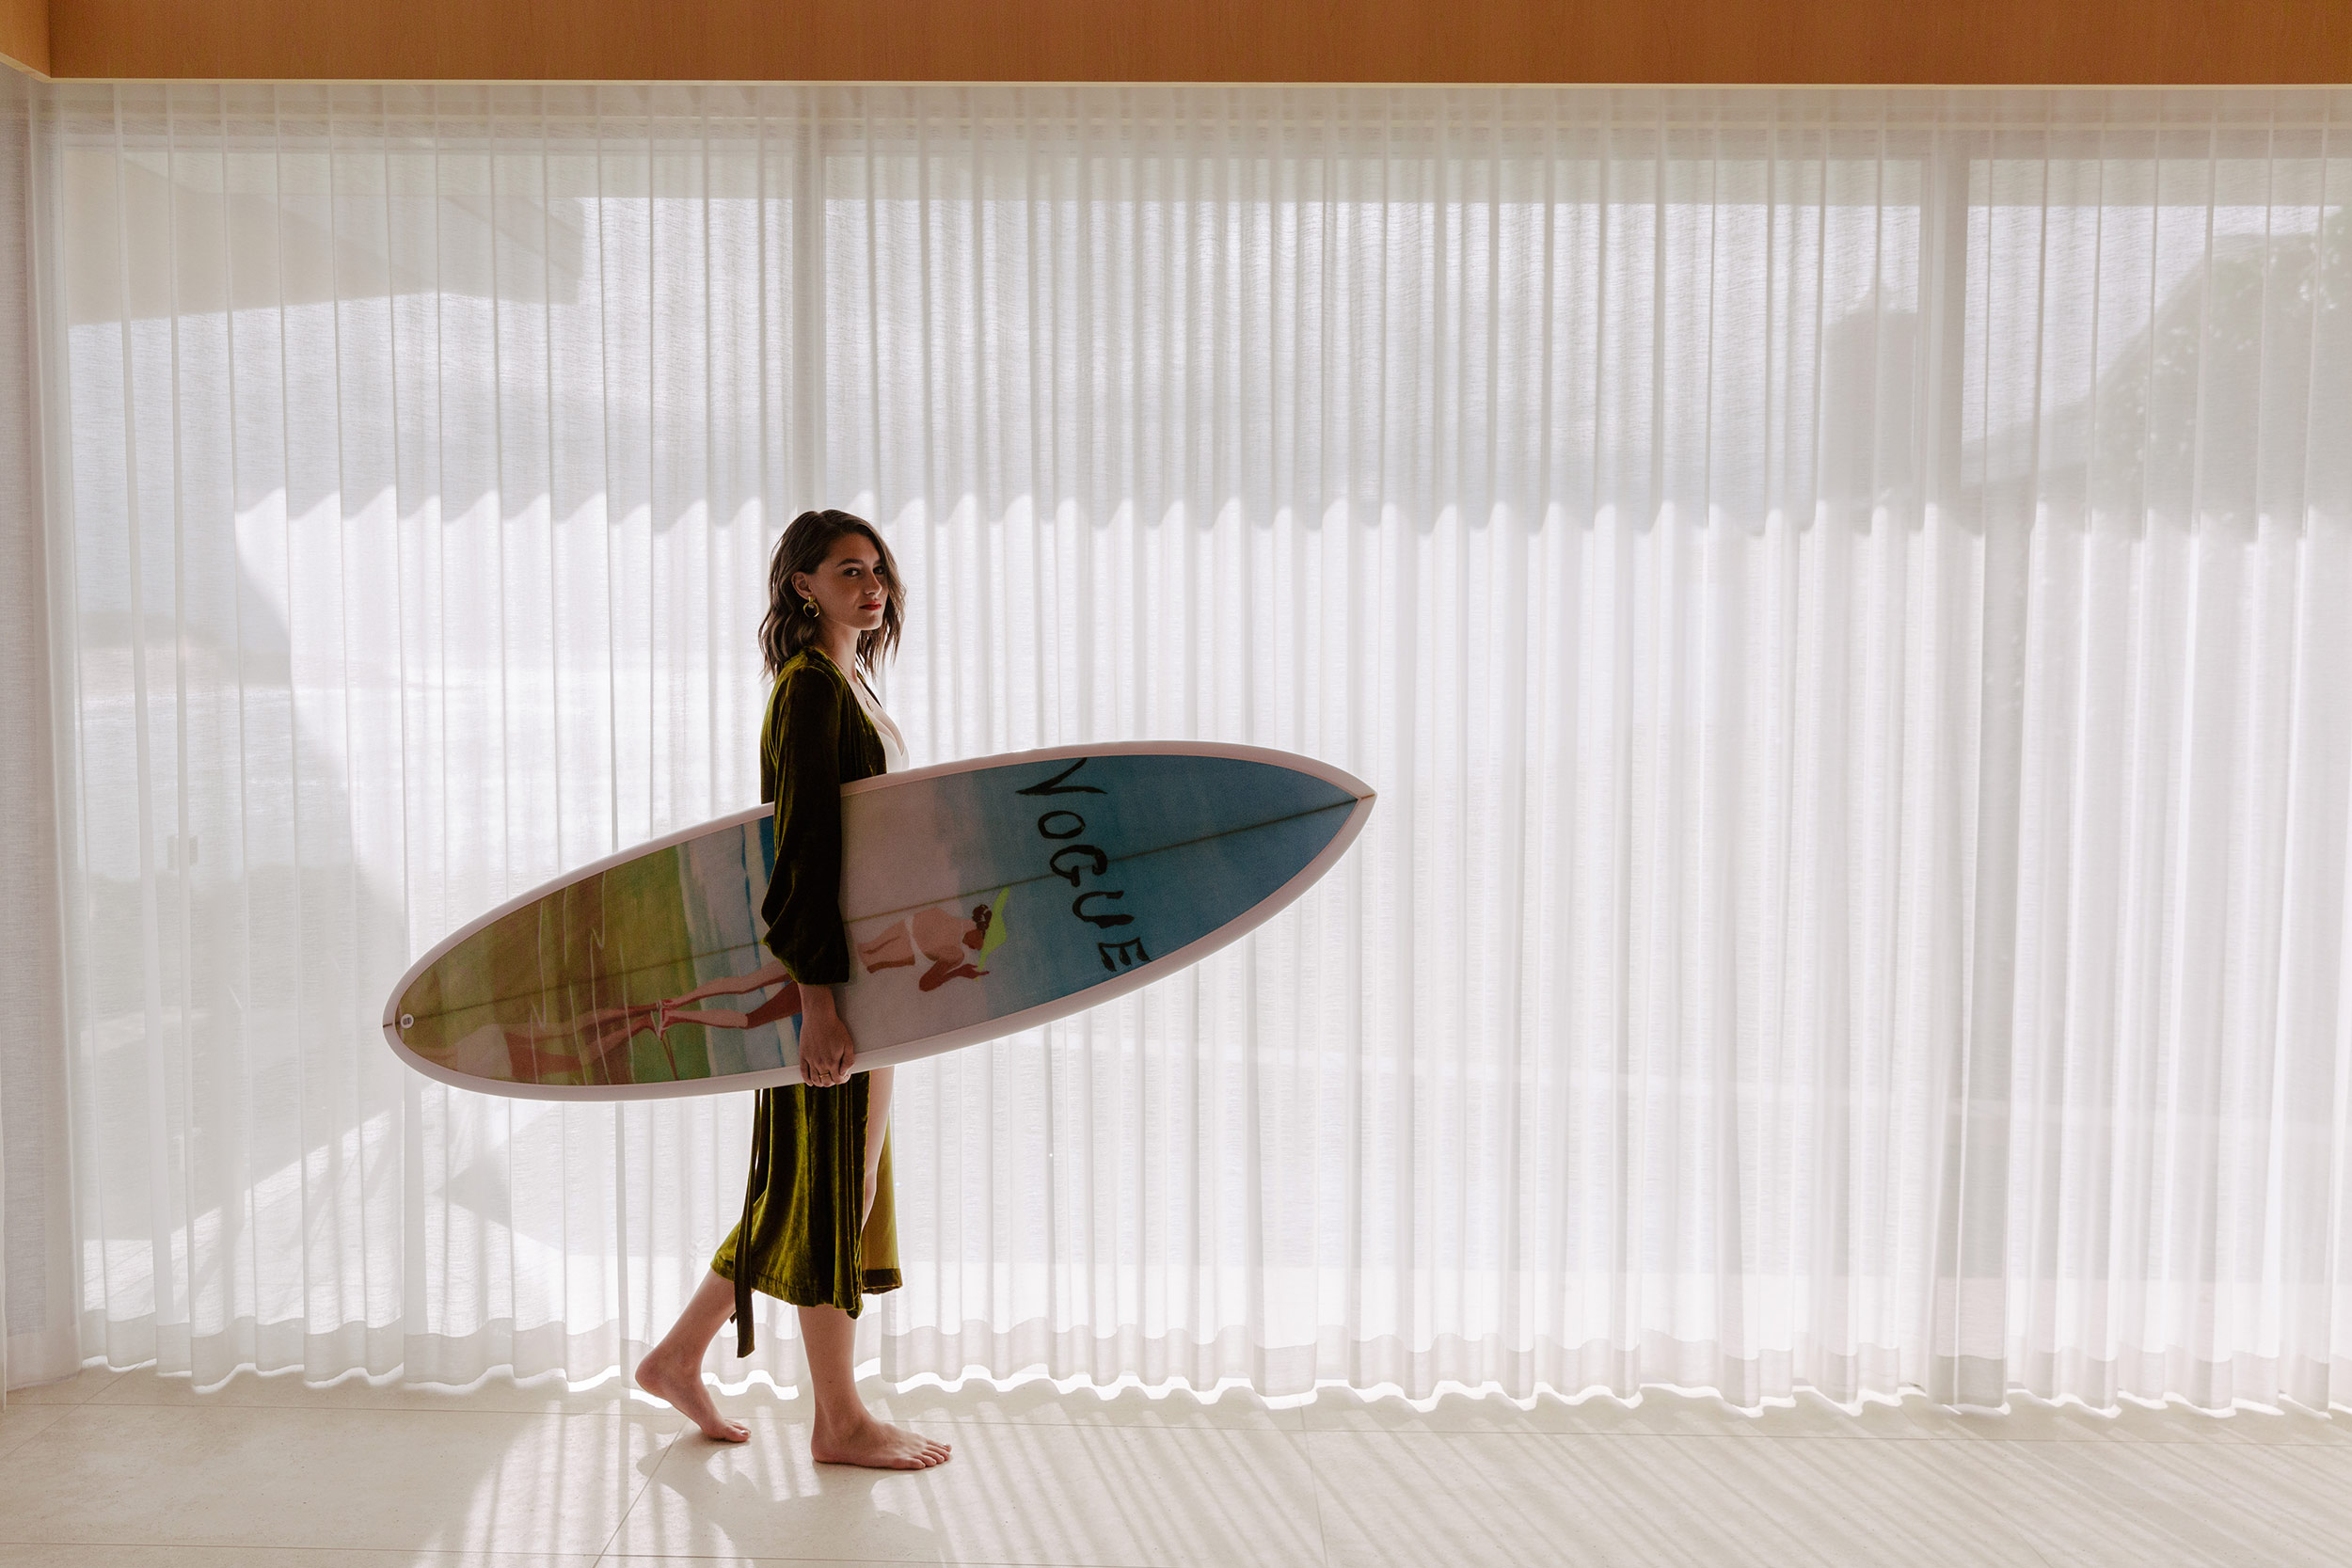 nusa-indah-surfboards-vogue-collection-eduardo-benito-8.jpg